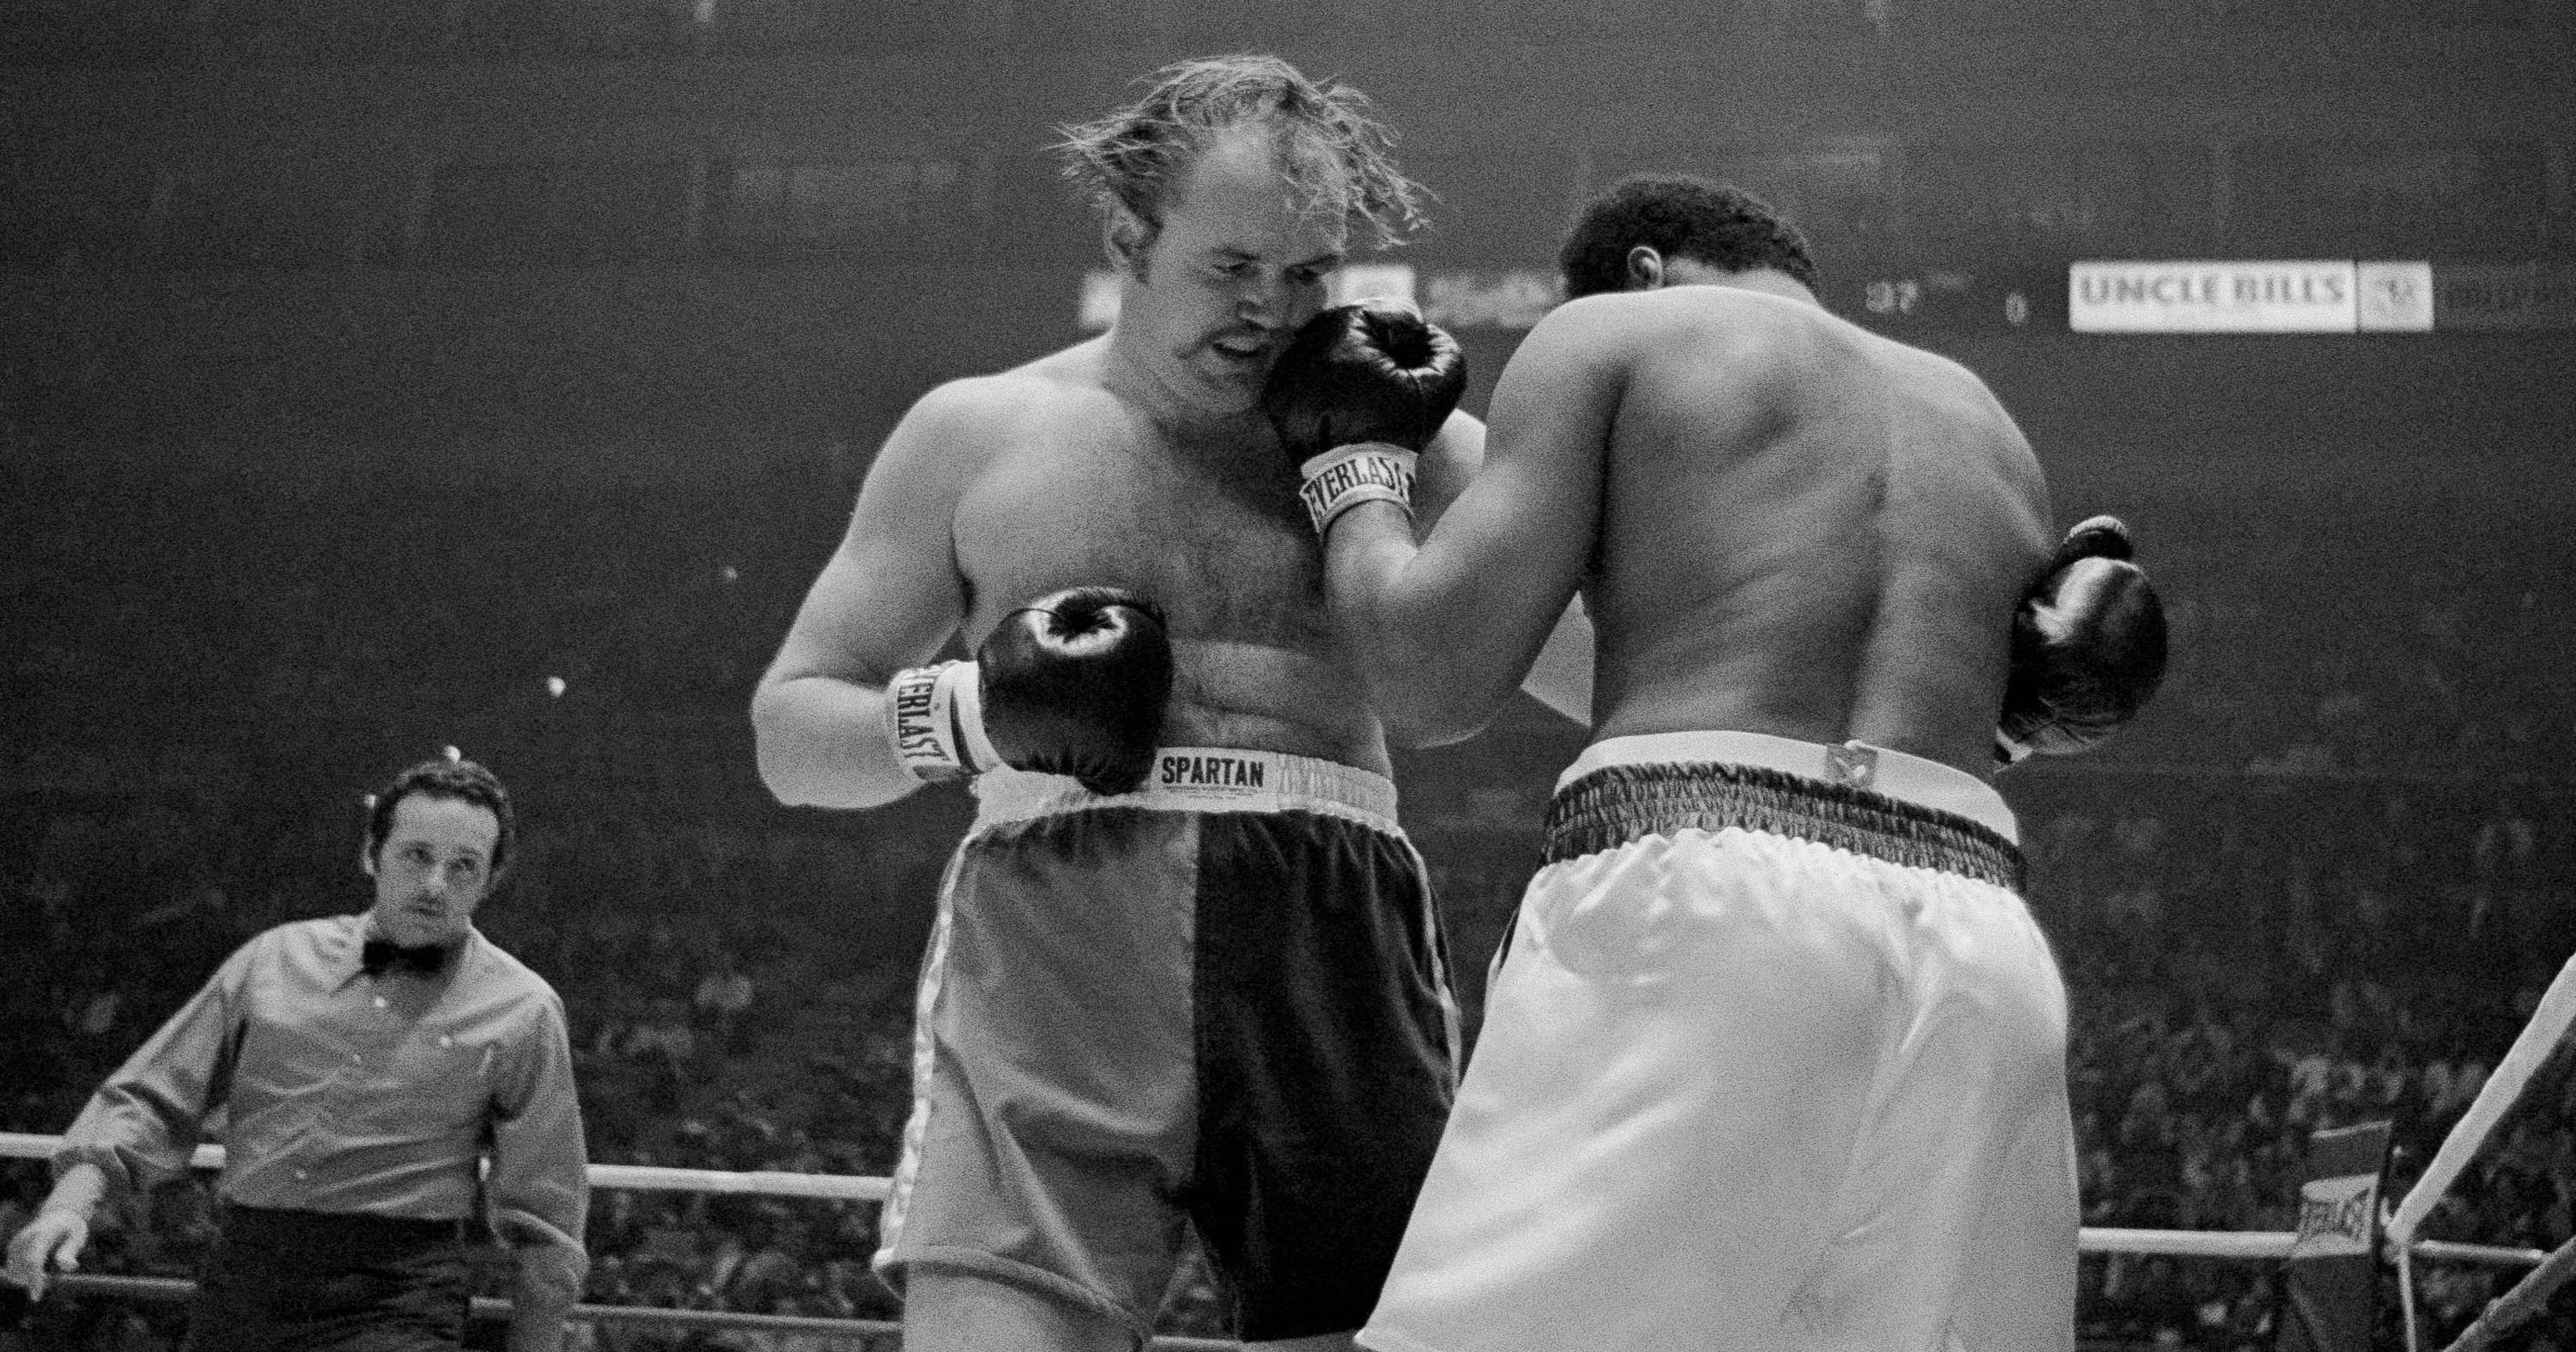 Chuck': Five things you should know about the real 'Rocky' Chuck Wepner